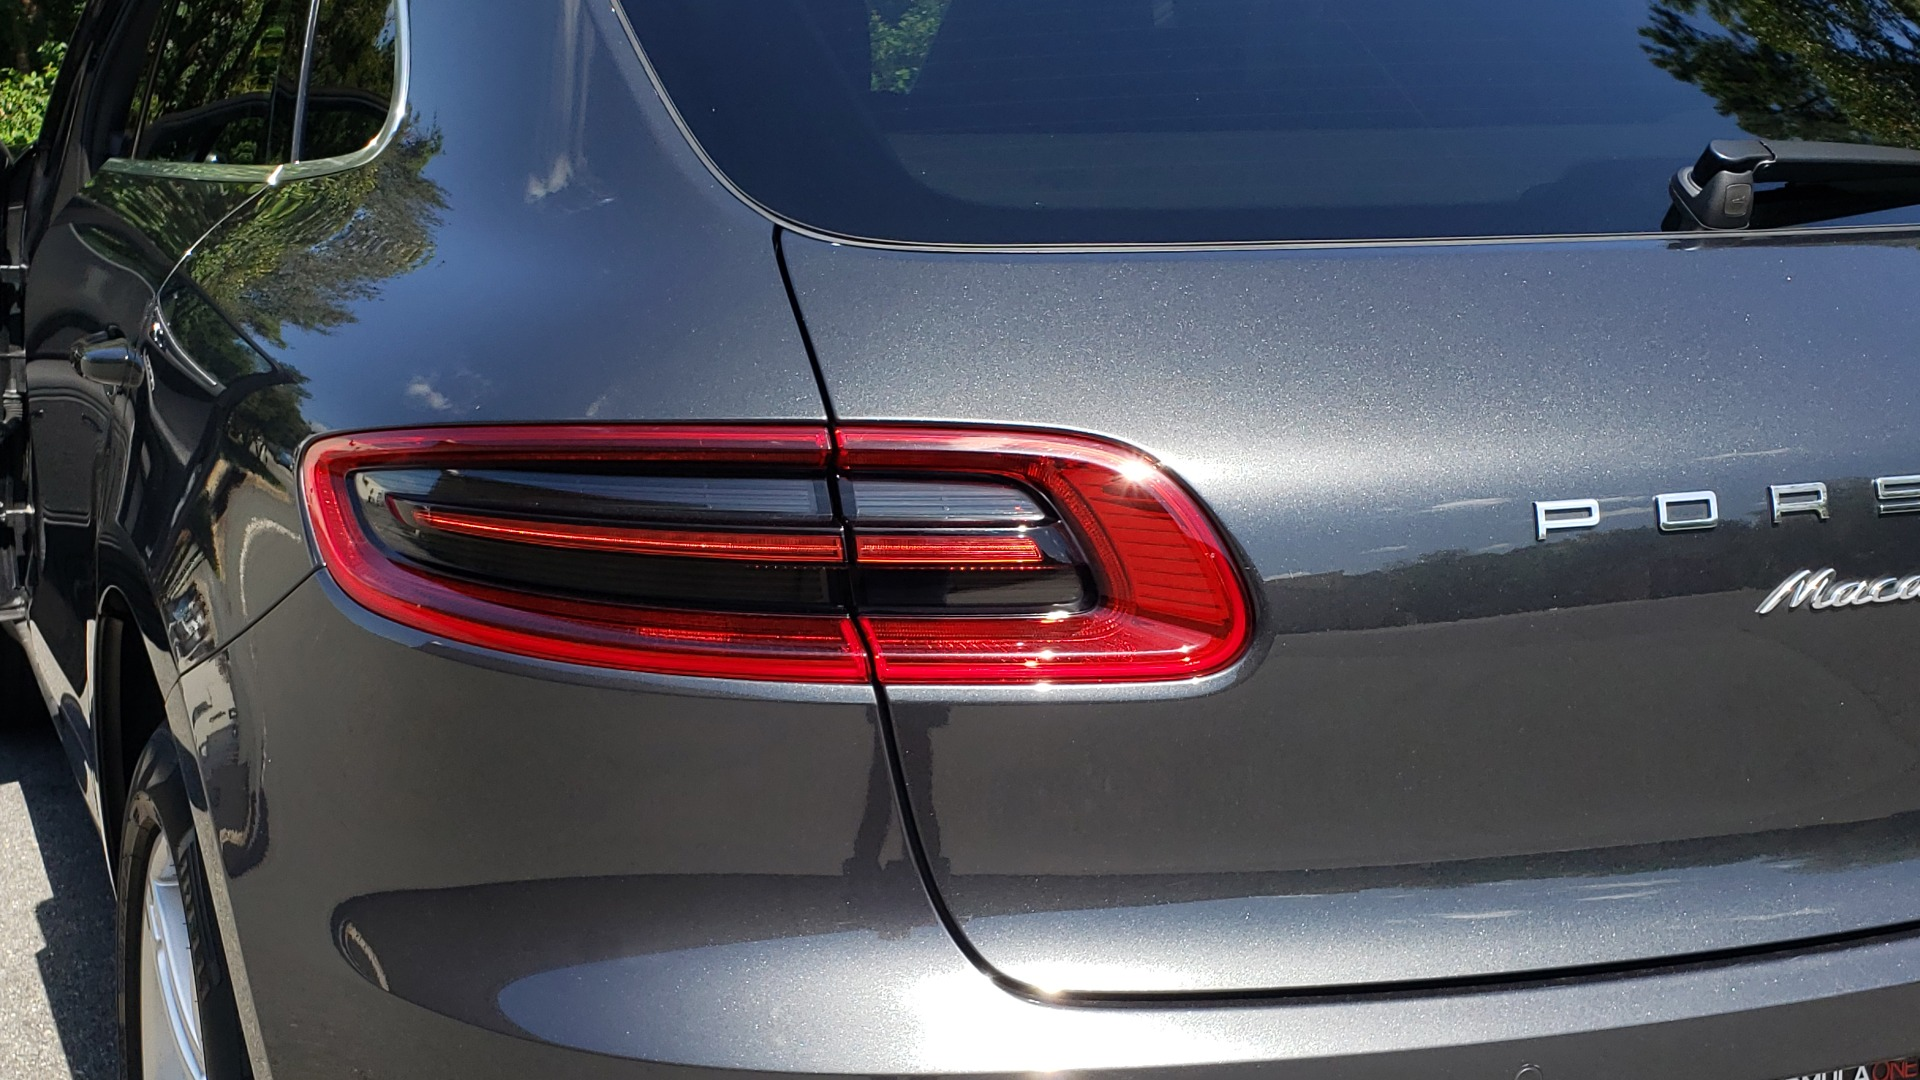 Used 2017 Porsche MACAN S PREMIUM PKG / NAV / BOSE / SUNROOF / REARVIEW for sale Sold at Formula Imports in Charlotte NC 28227 41